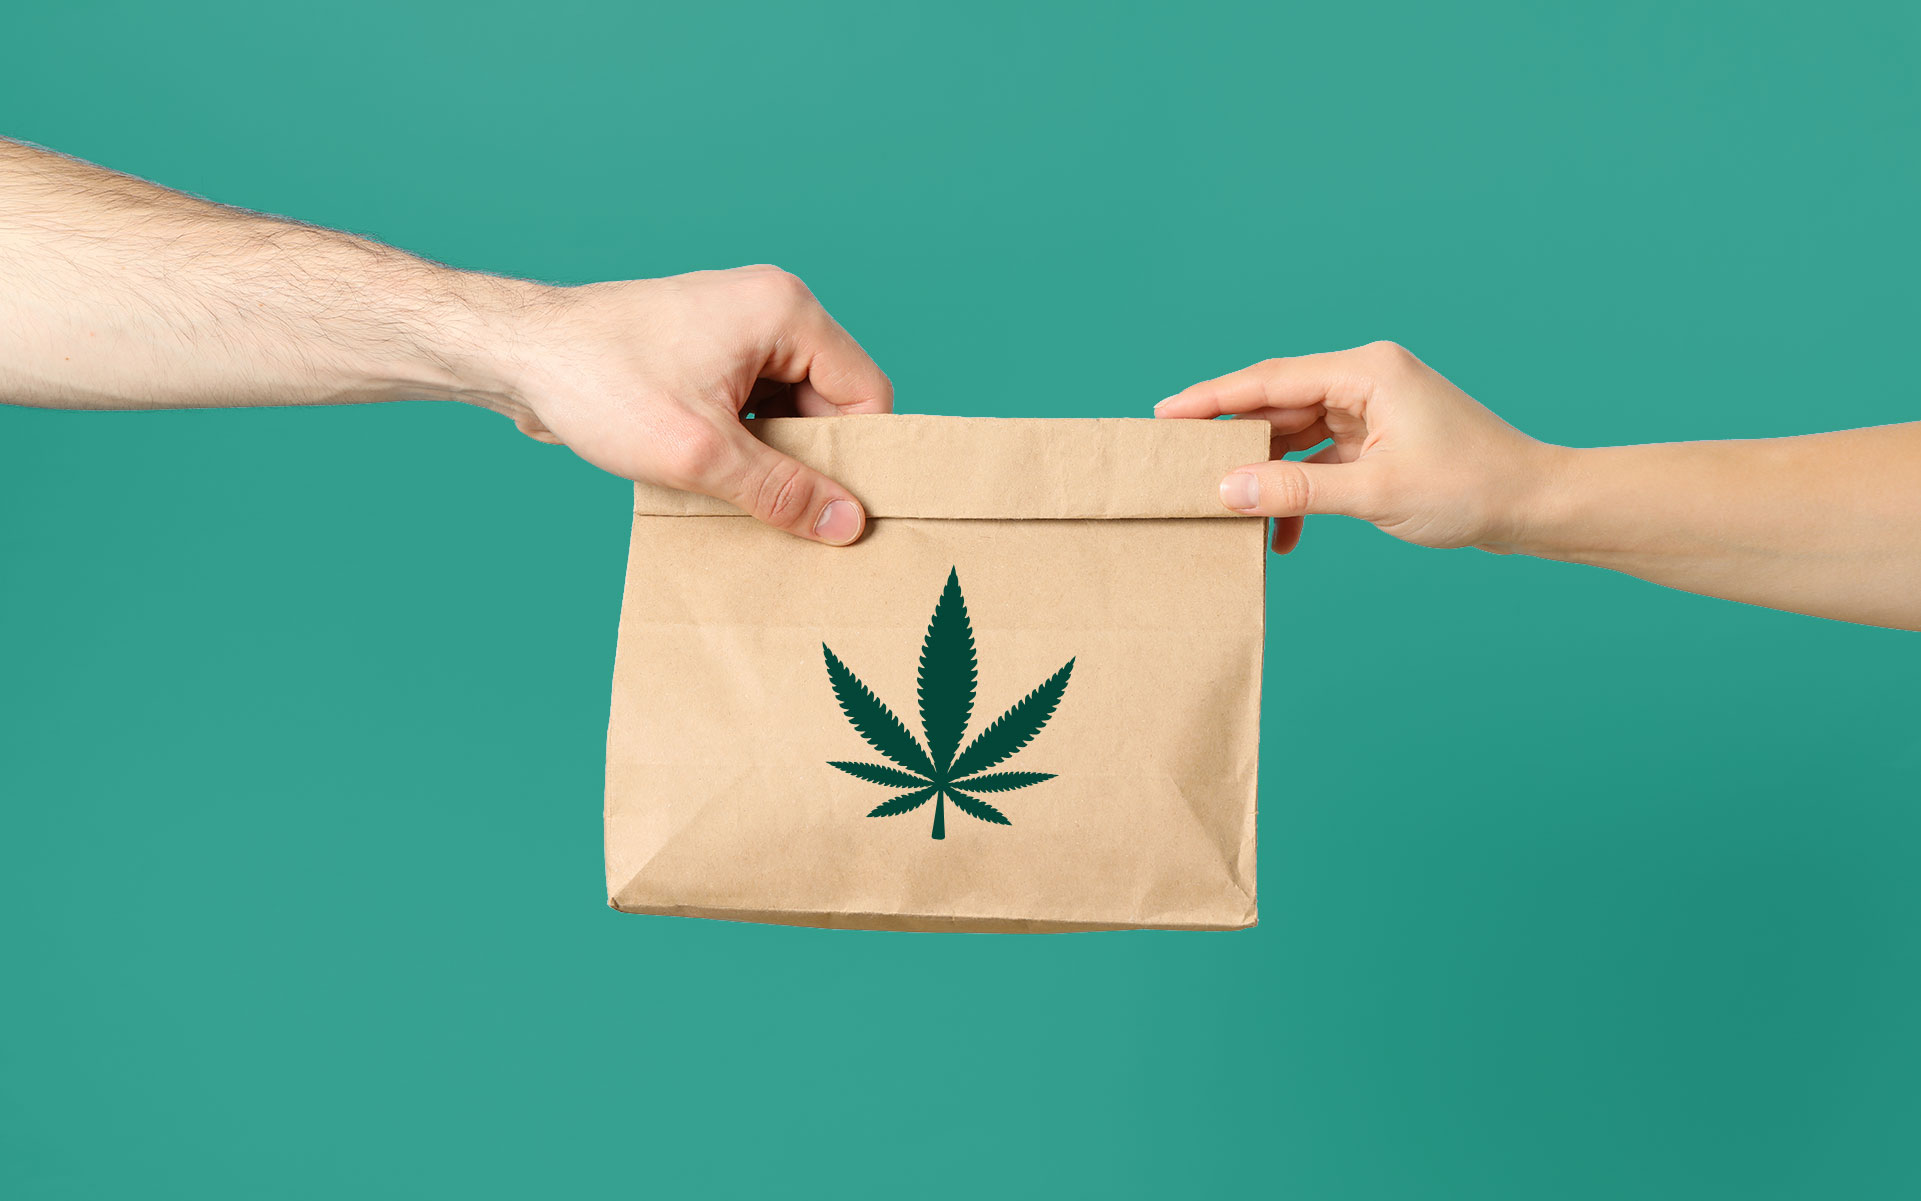 Physical distancing and cannabis delivery go great together. (Atlas/AdobeStock)